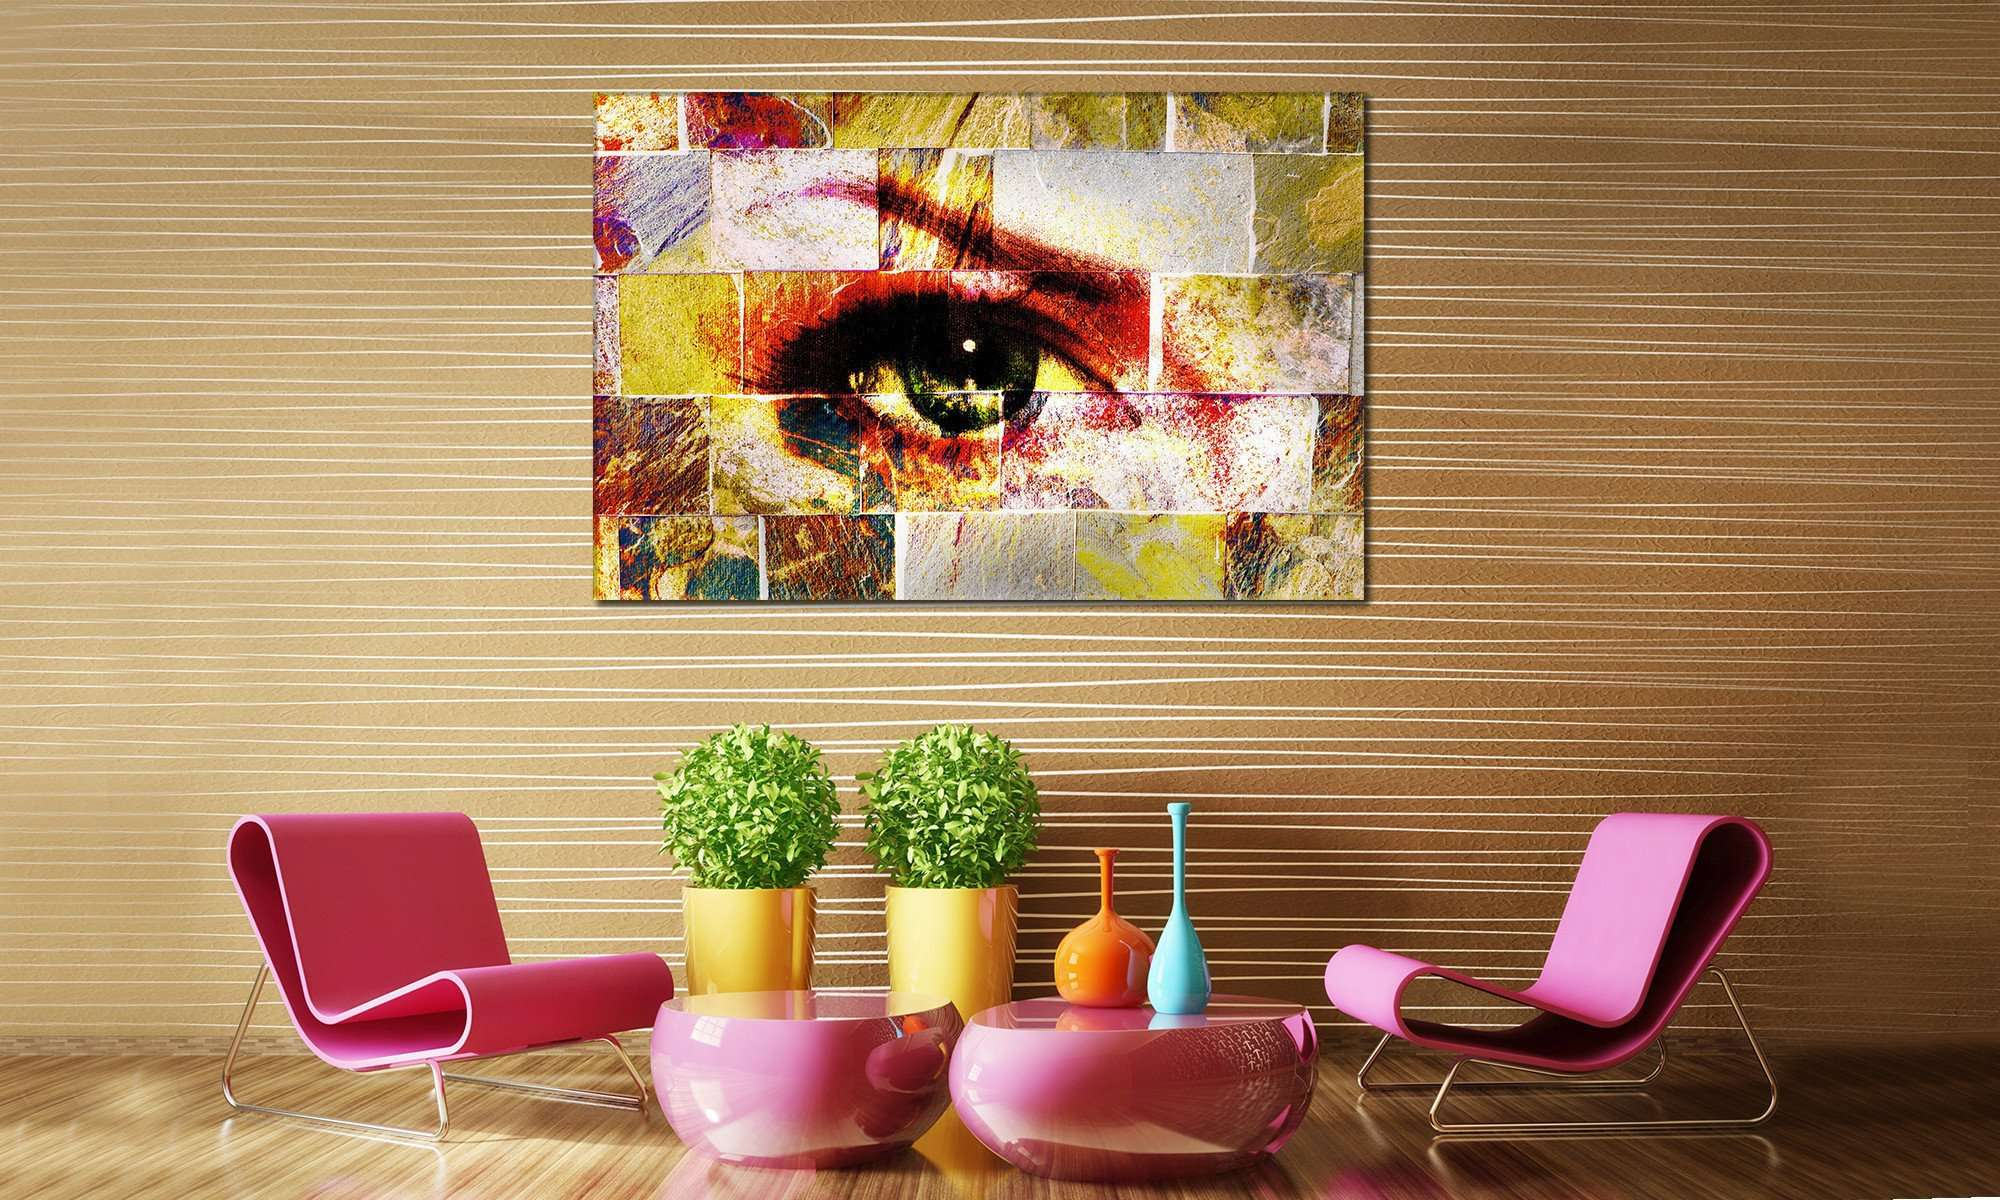 Abstract Eye №839 Ready to Hang Canvas Print